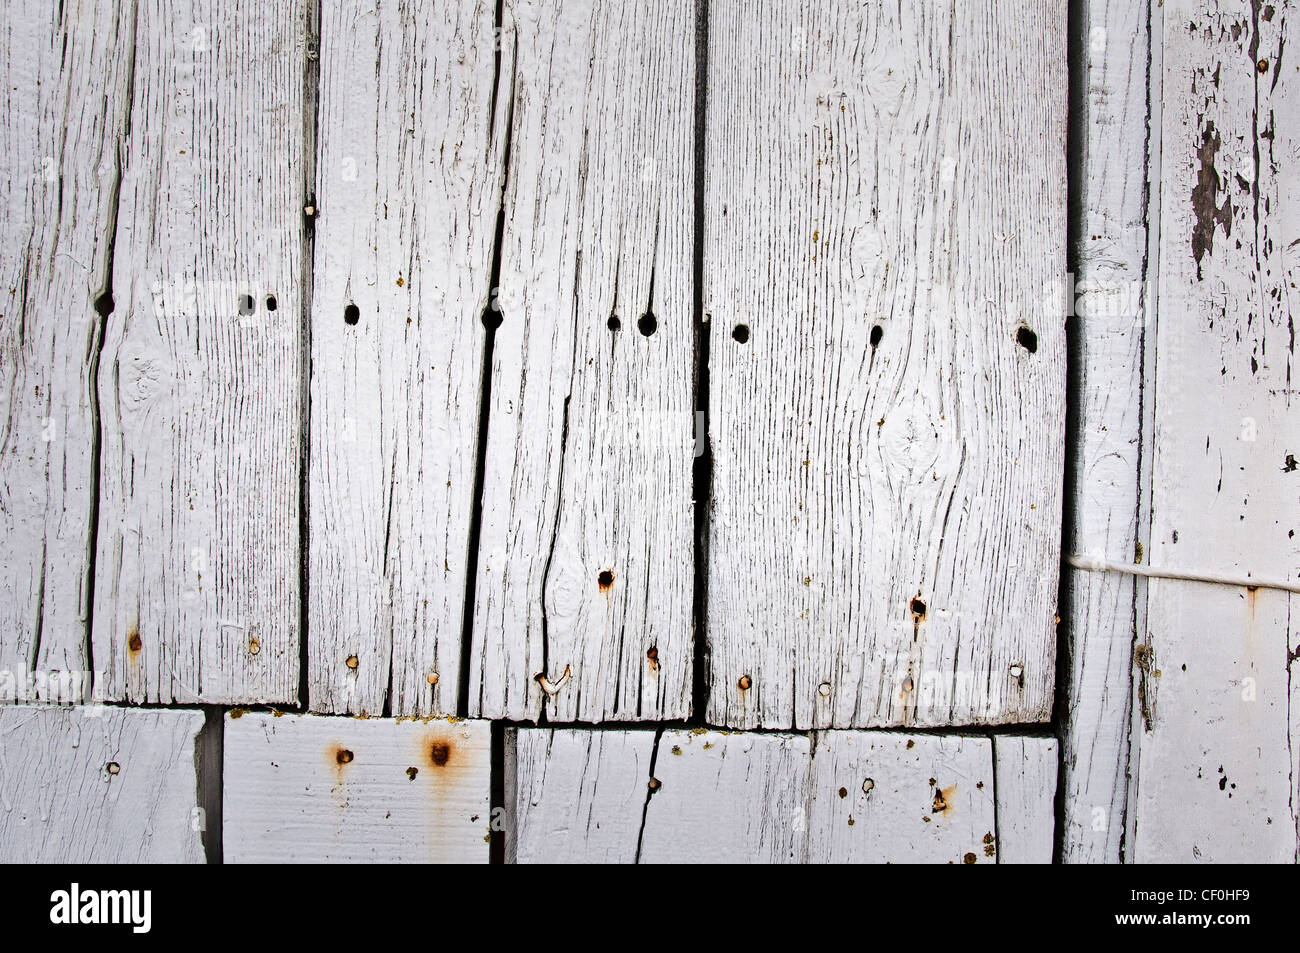 White painted wood planks - Stock Image